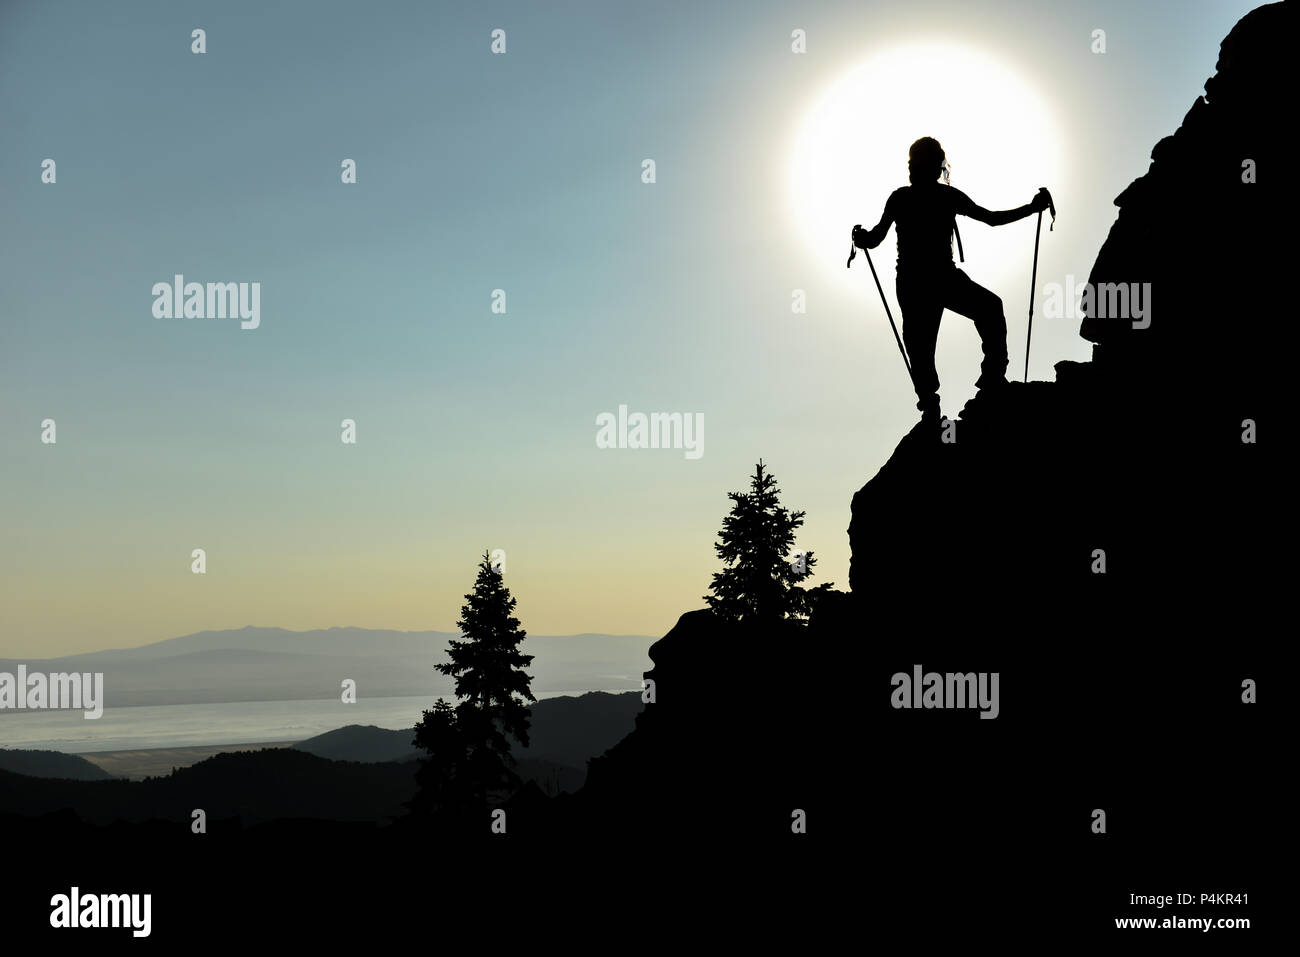 inspired by nature & target success - Stock Image